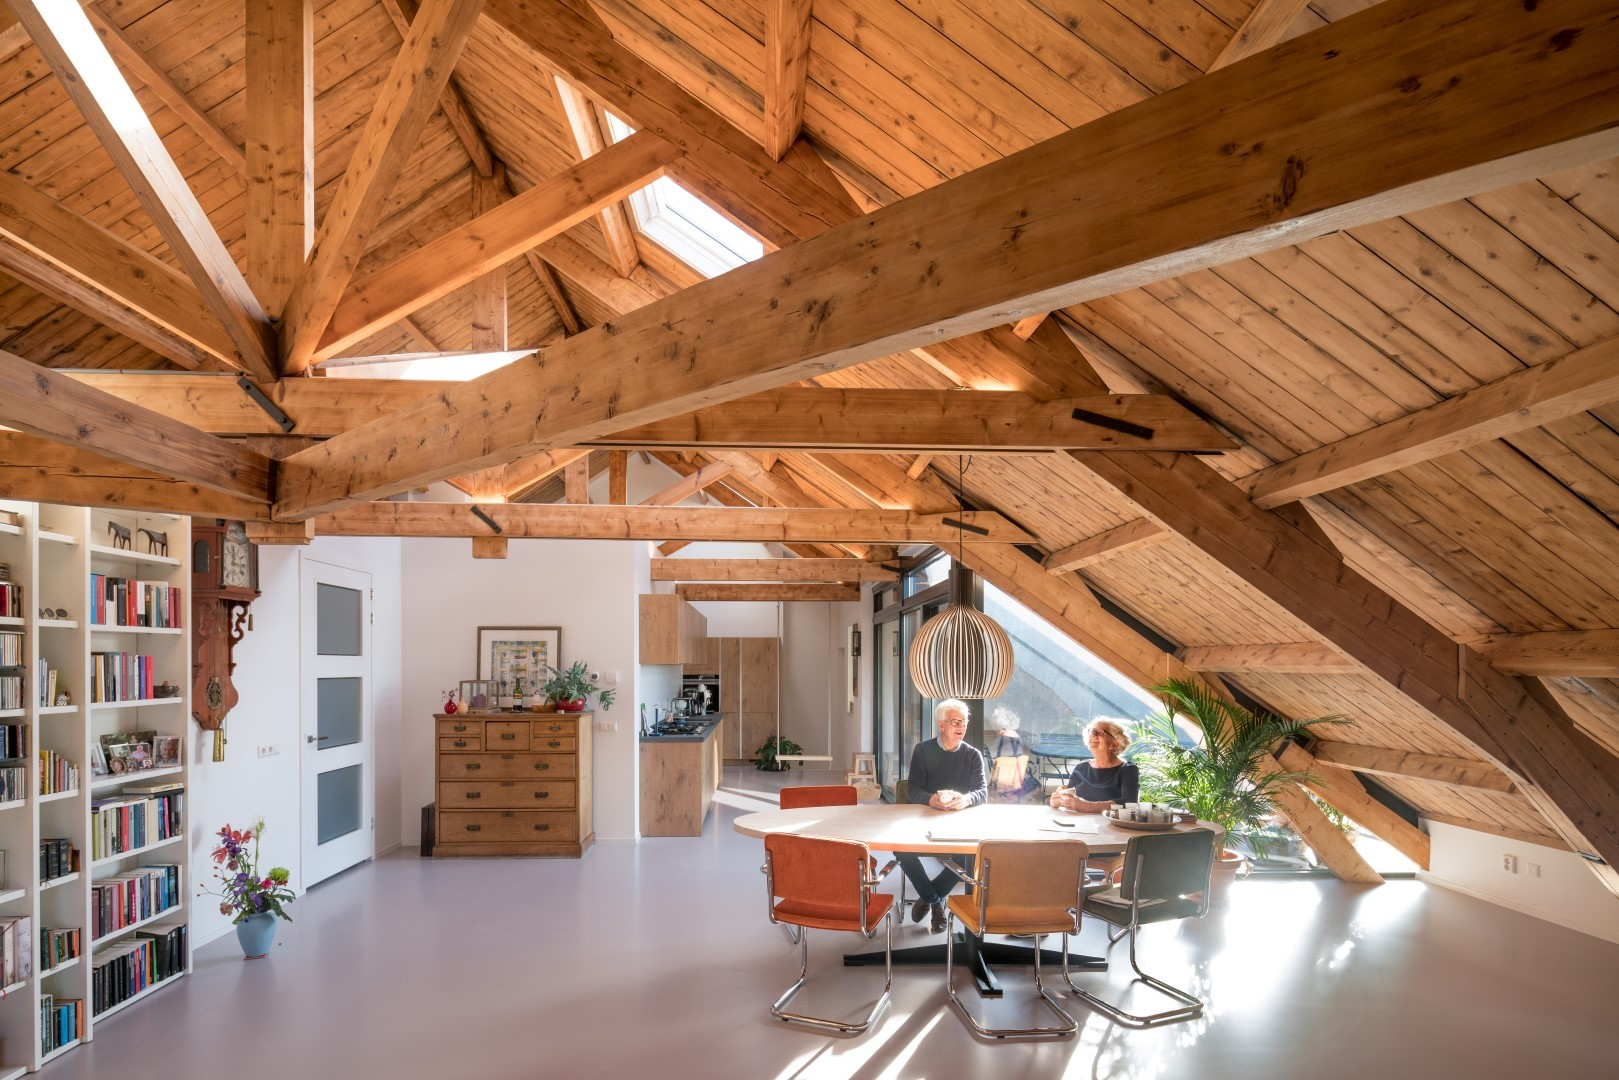 Gallery of Gouda Cheese Warehouse Loft Apartments  Mei